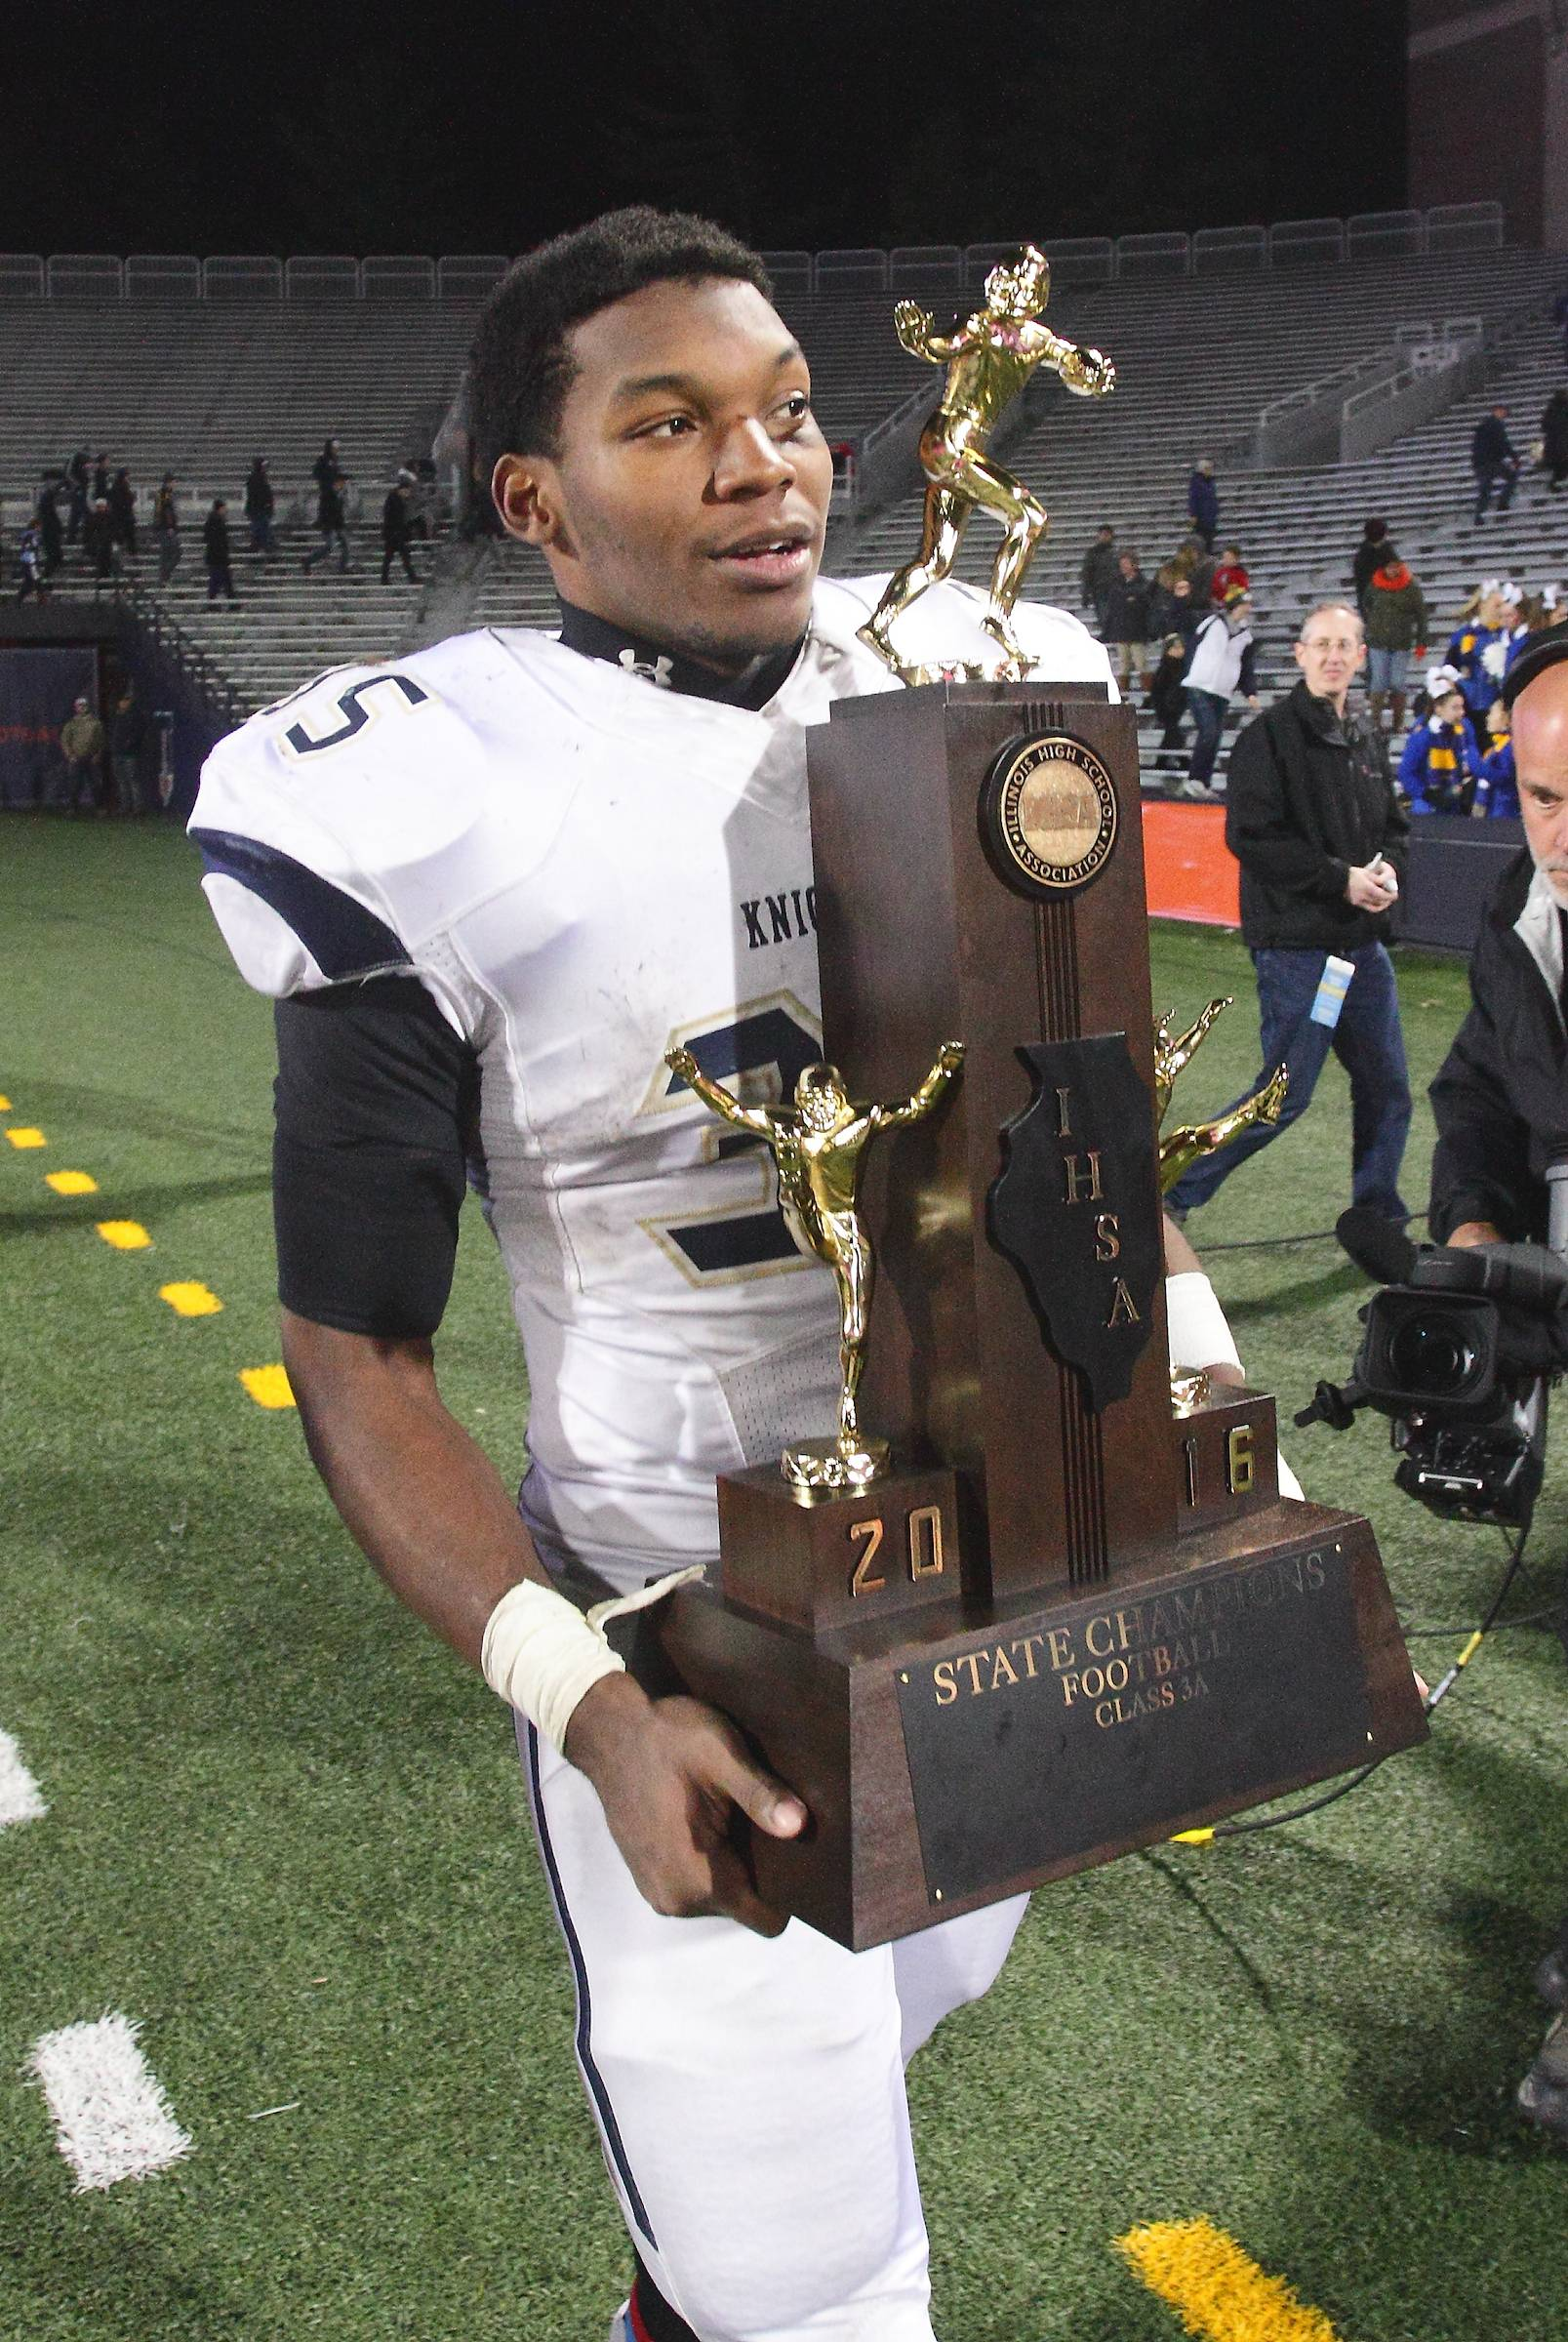 IC Catholic Prep's Jordan Rowell carries the team's championship trophy after their Illinois High School Association Class 3A award ceremony. The Knights blanked the Cavaliers 43-0 to win this year's title.